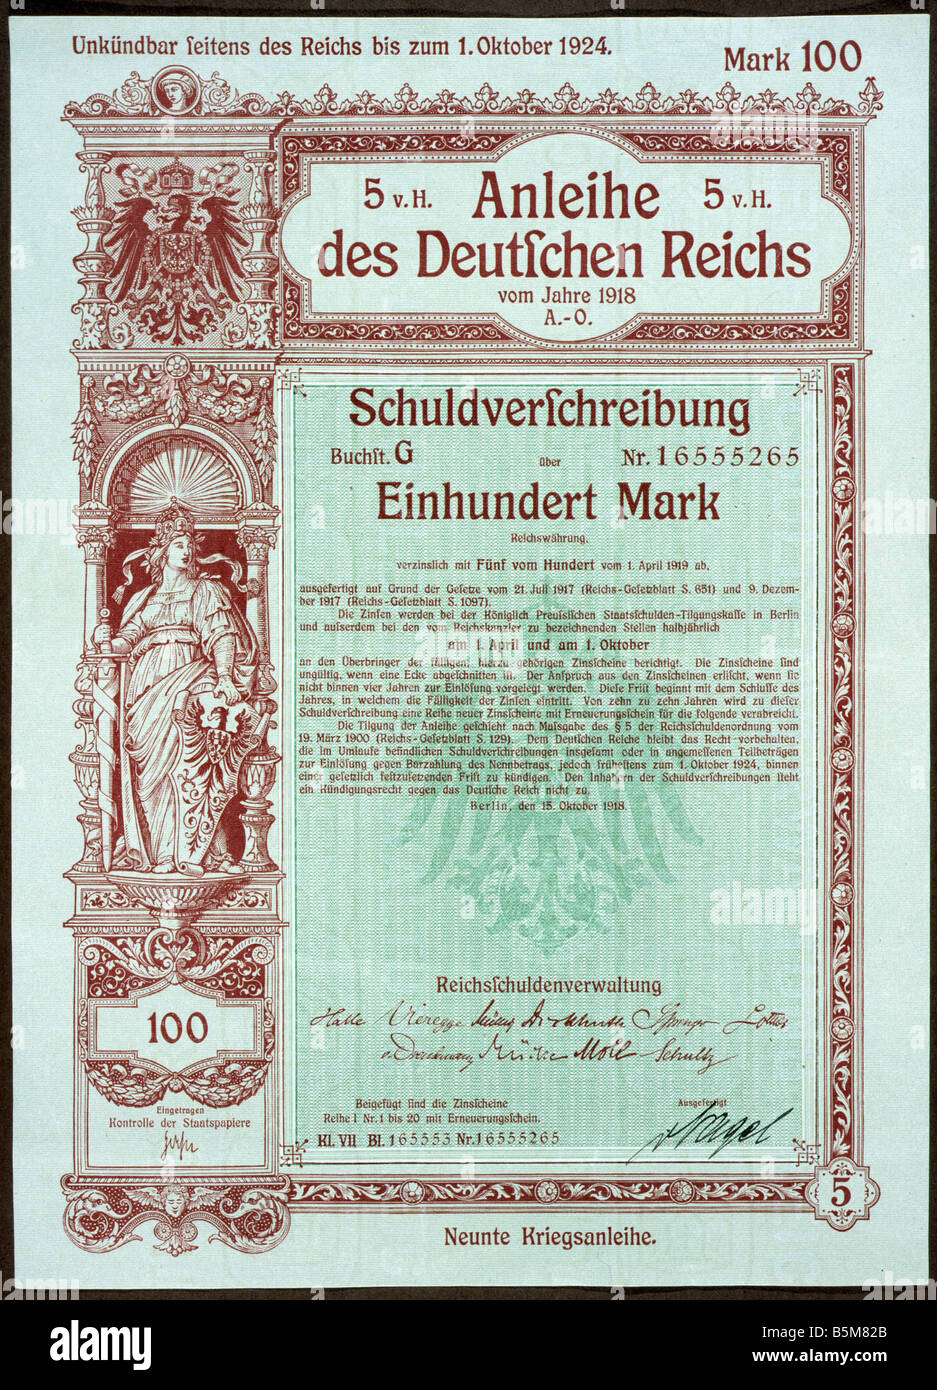 2 F20 A5 1918 9th War Bond German Reich 1918 Finance Bond Bond of the German Reich from 1918 valuing 100 Mark 9th - Stock Image